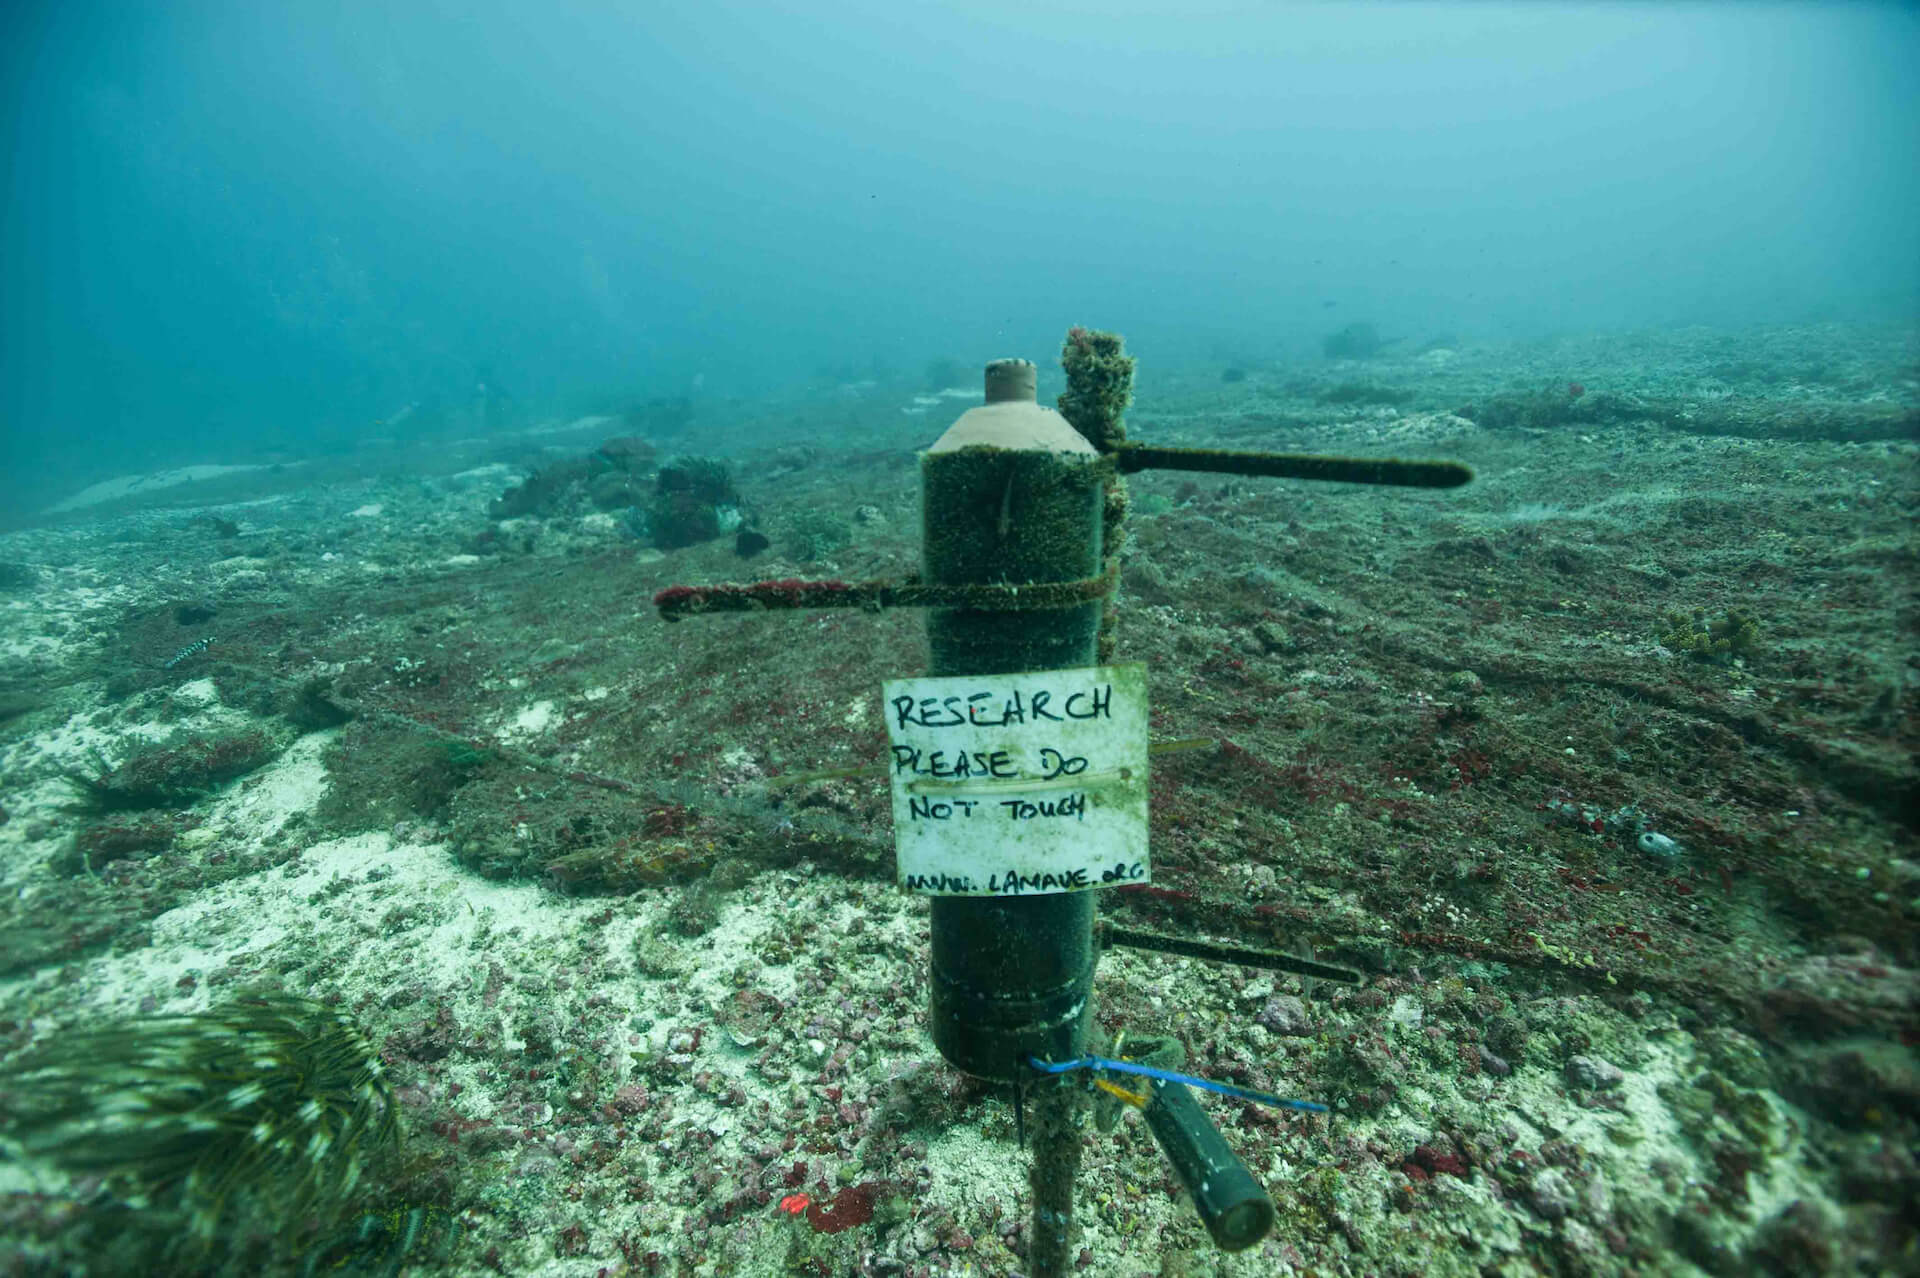 An underwater research site labeled 'do not touch'